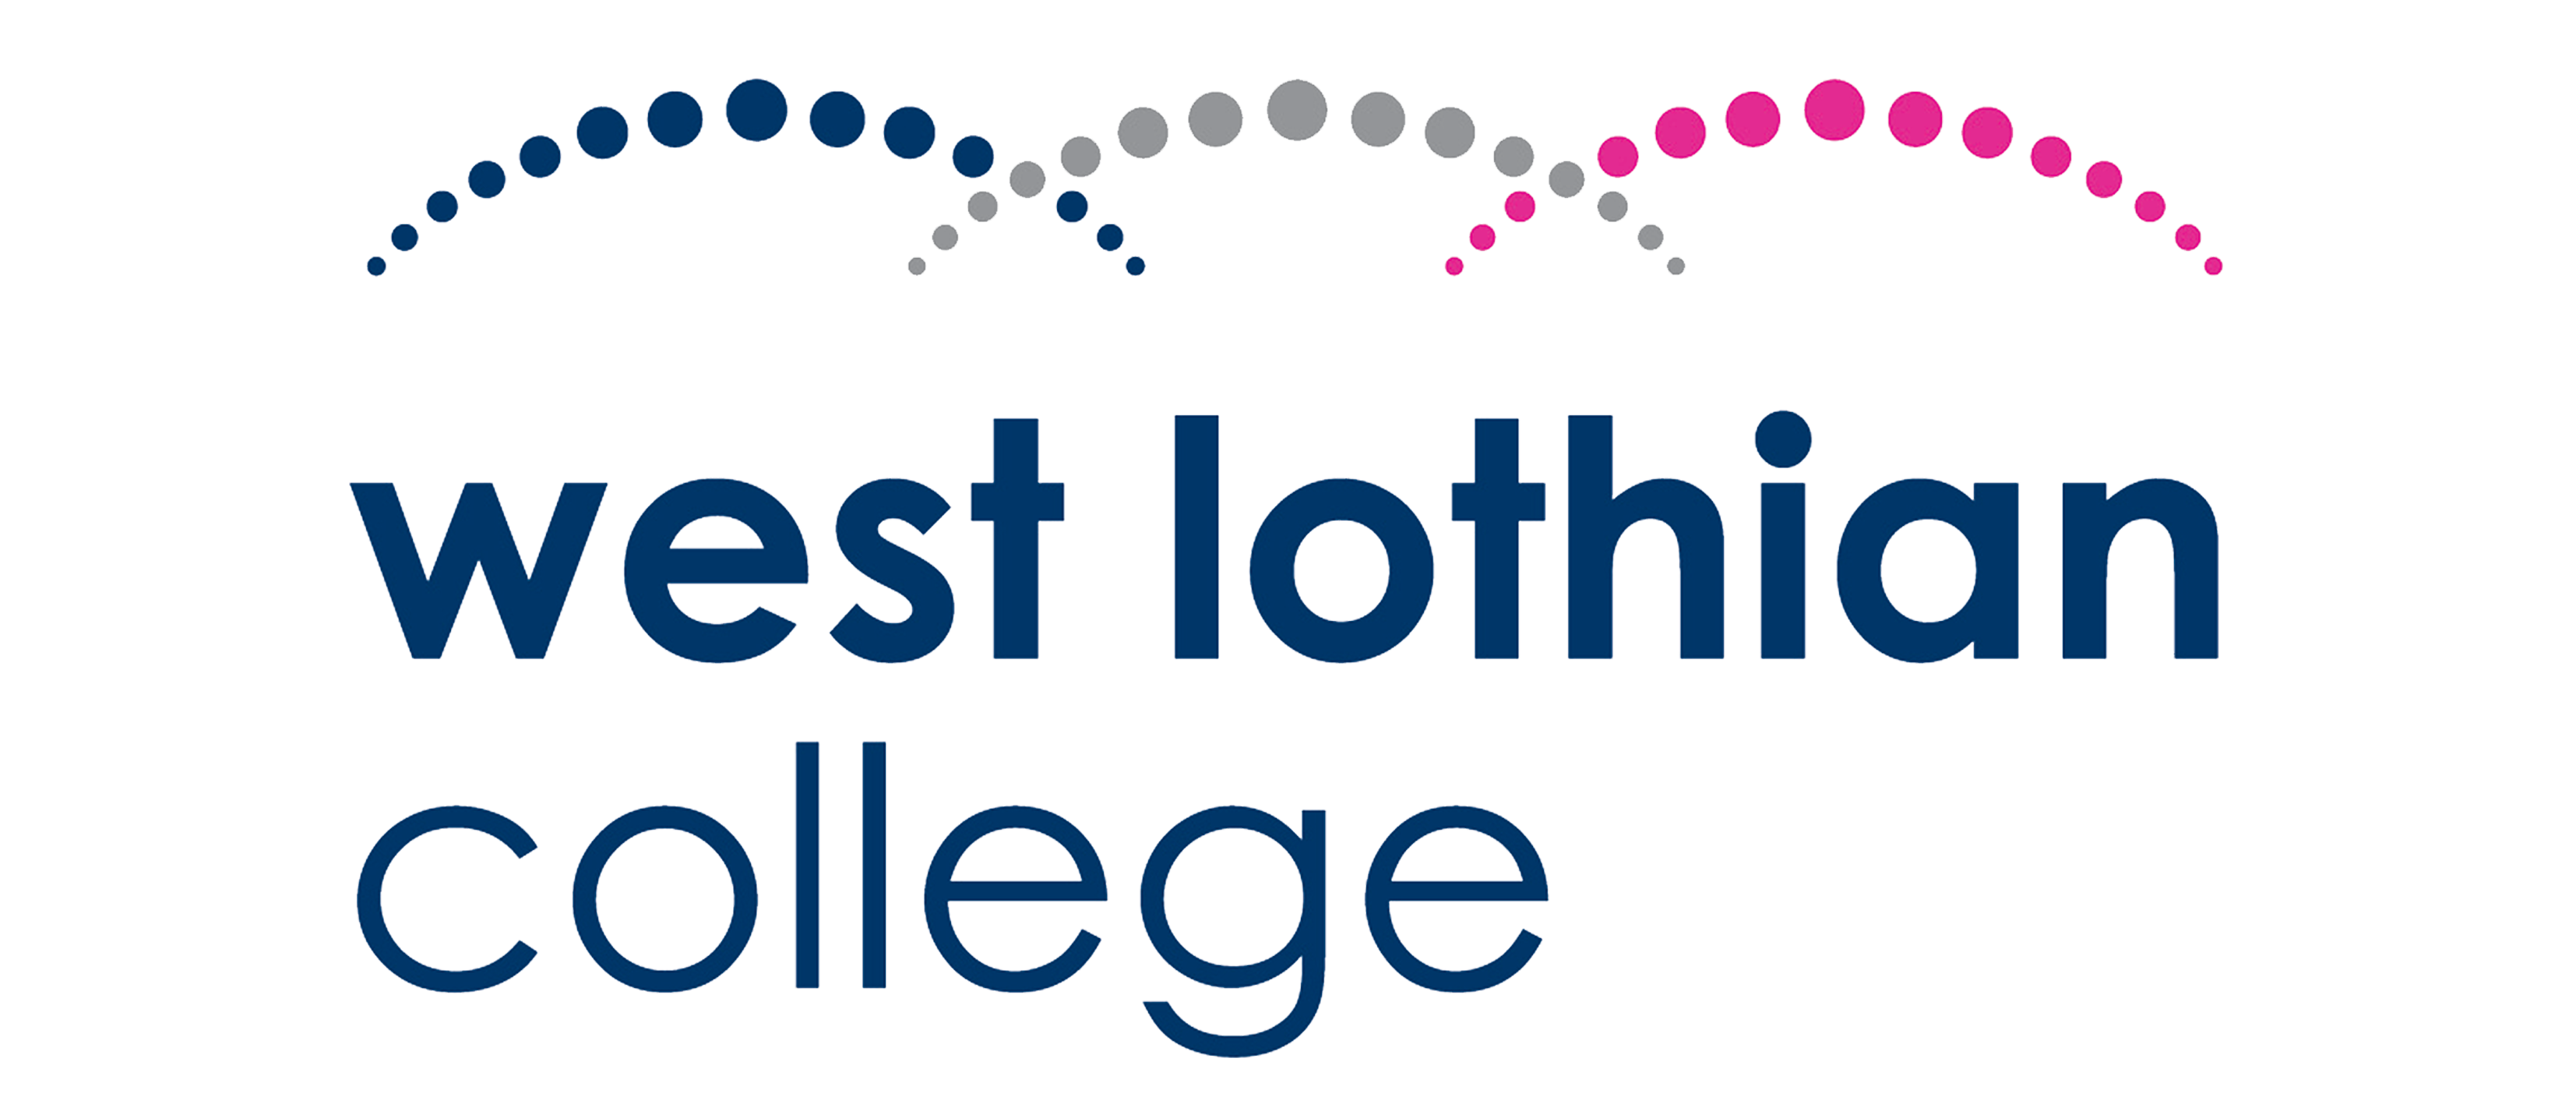 Visit west Lothian College website